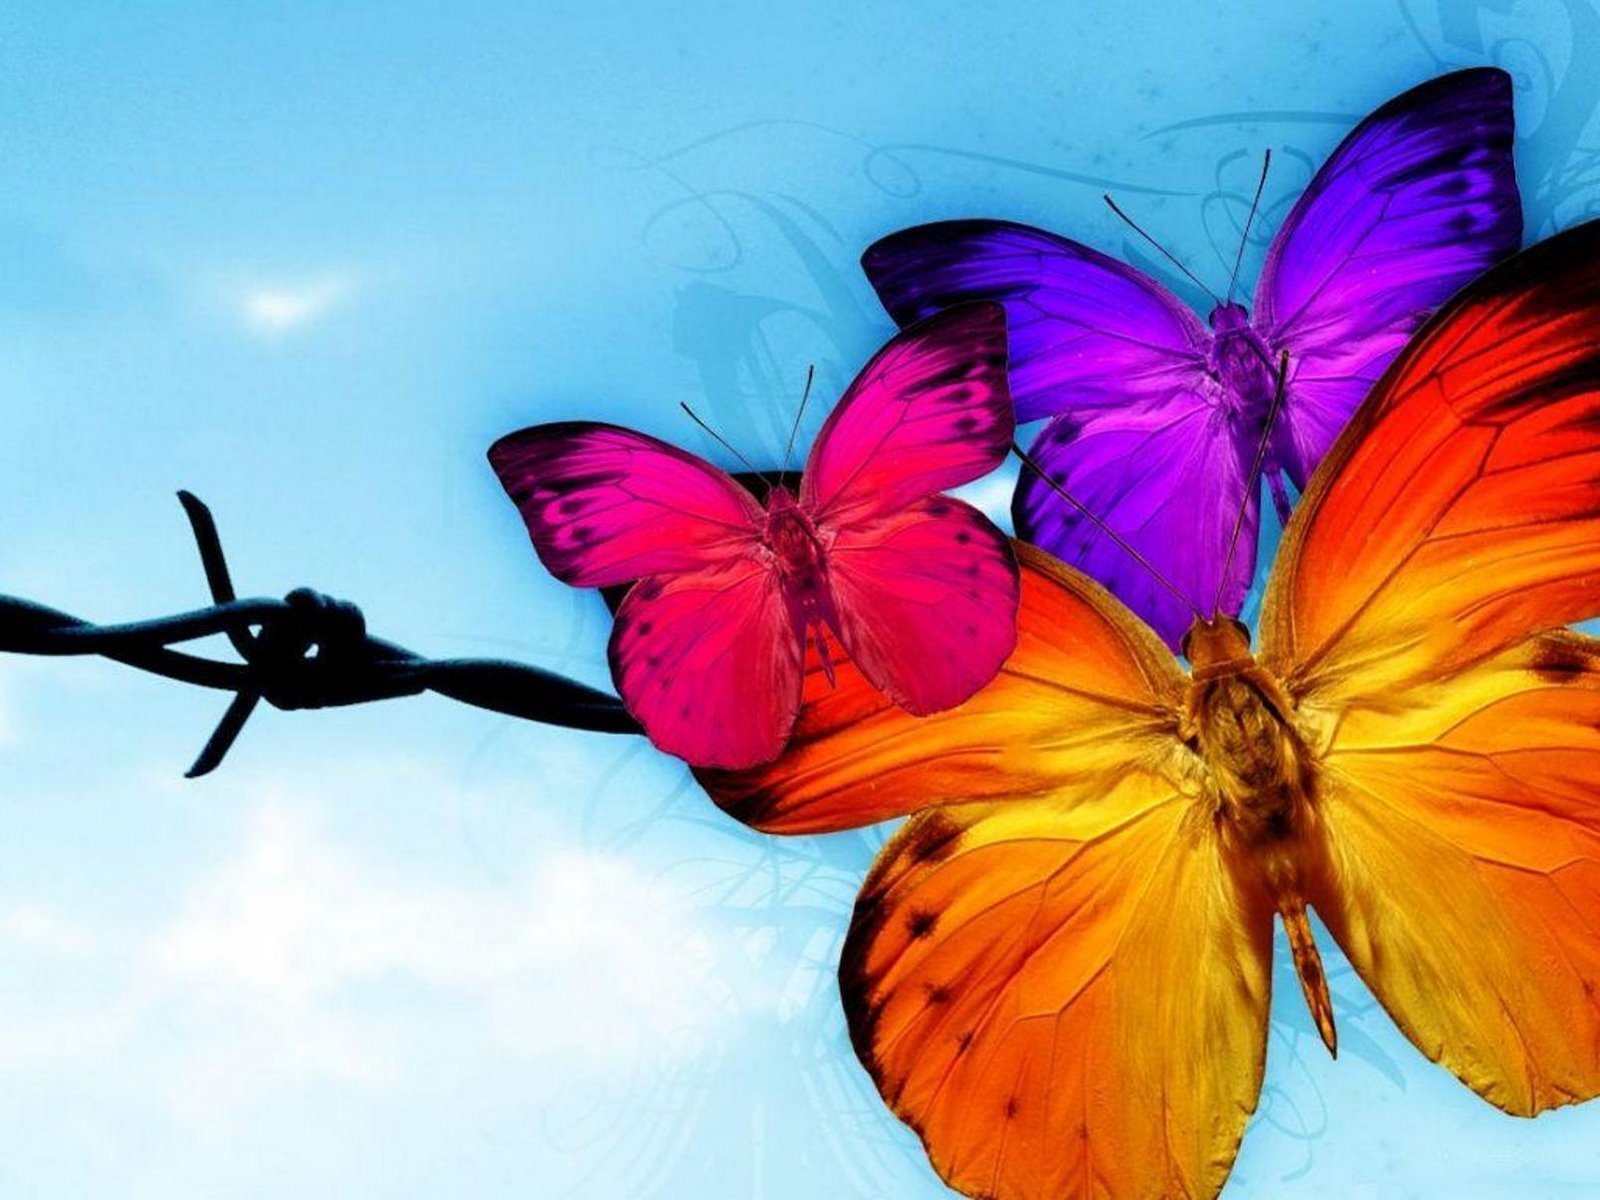 Top Wallpaper High Quality Butterfly - The-best-top-desktop-butterflies-wallpaper-hd-butterfly-wallpaper-35  You Should Have_47910.jpg